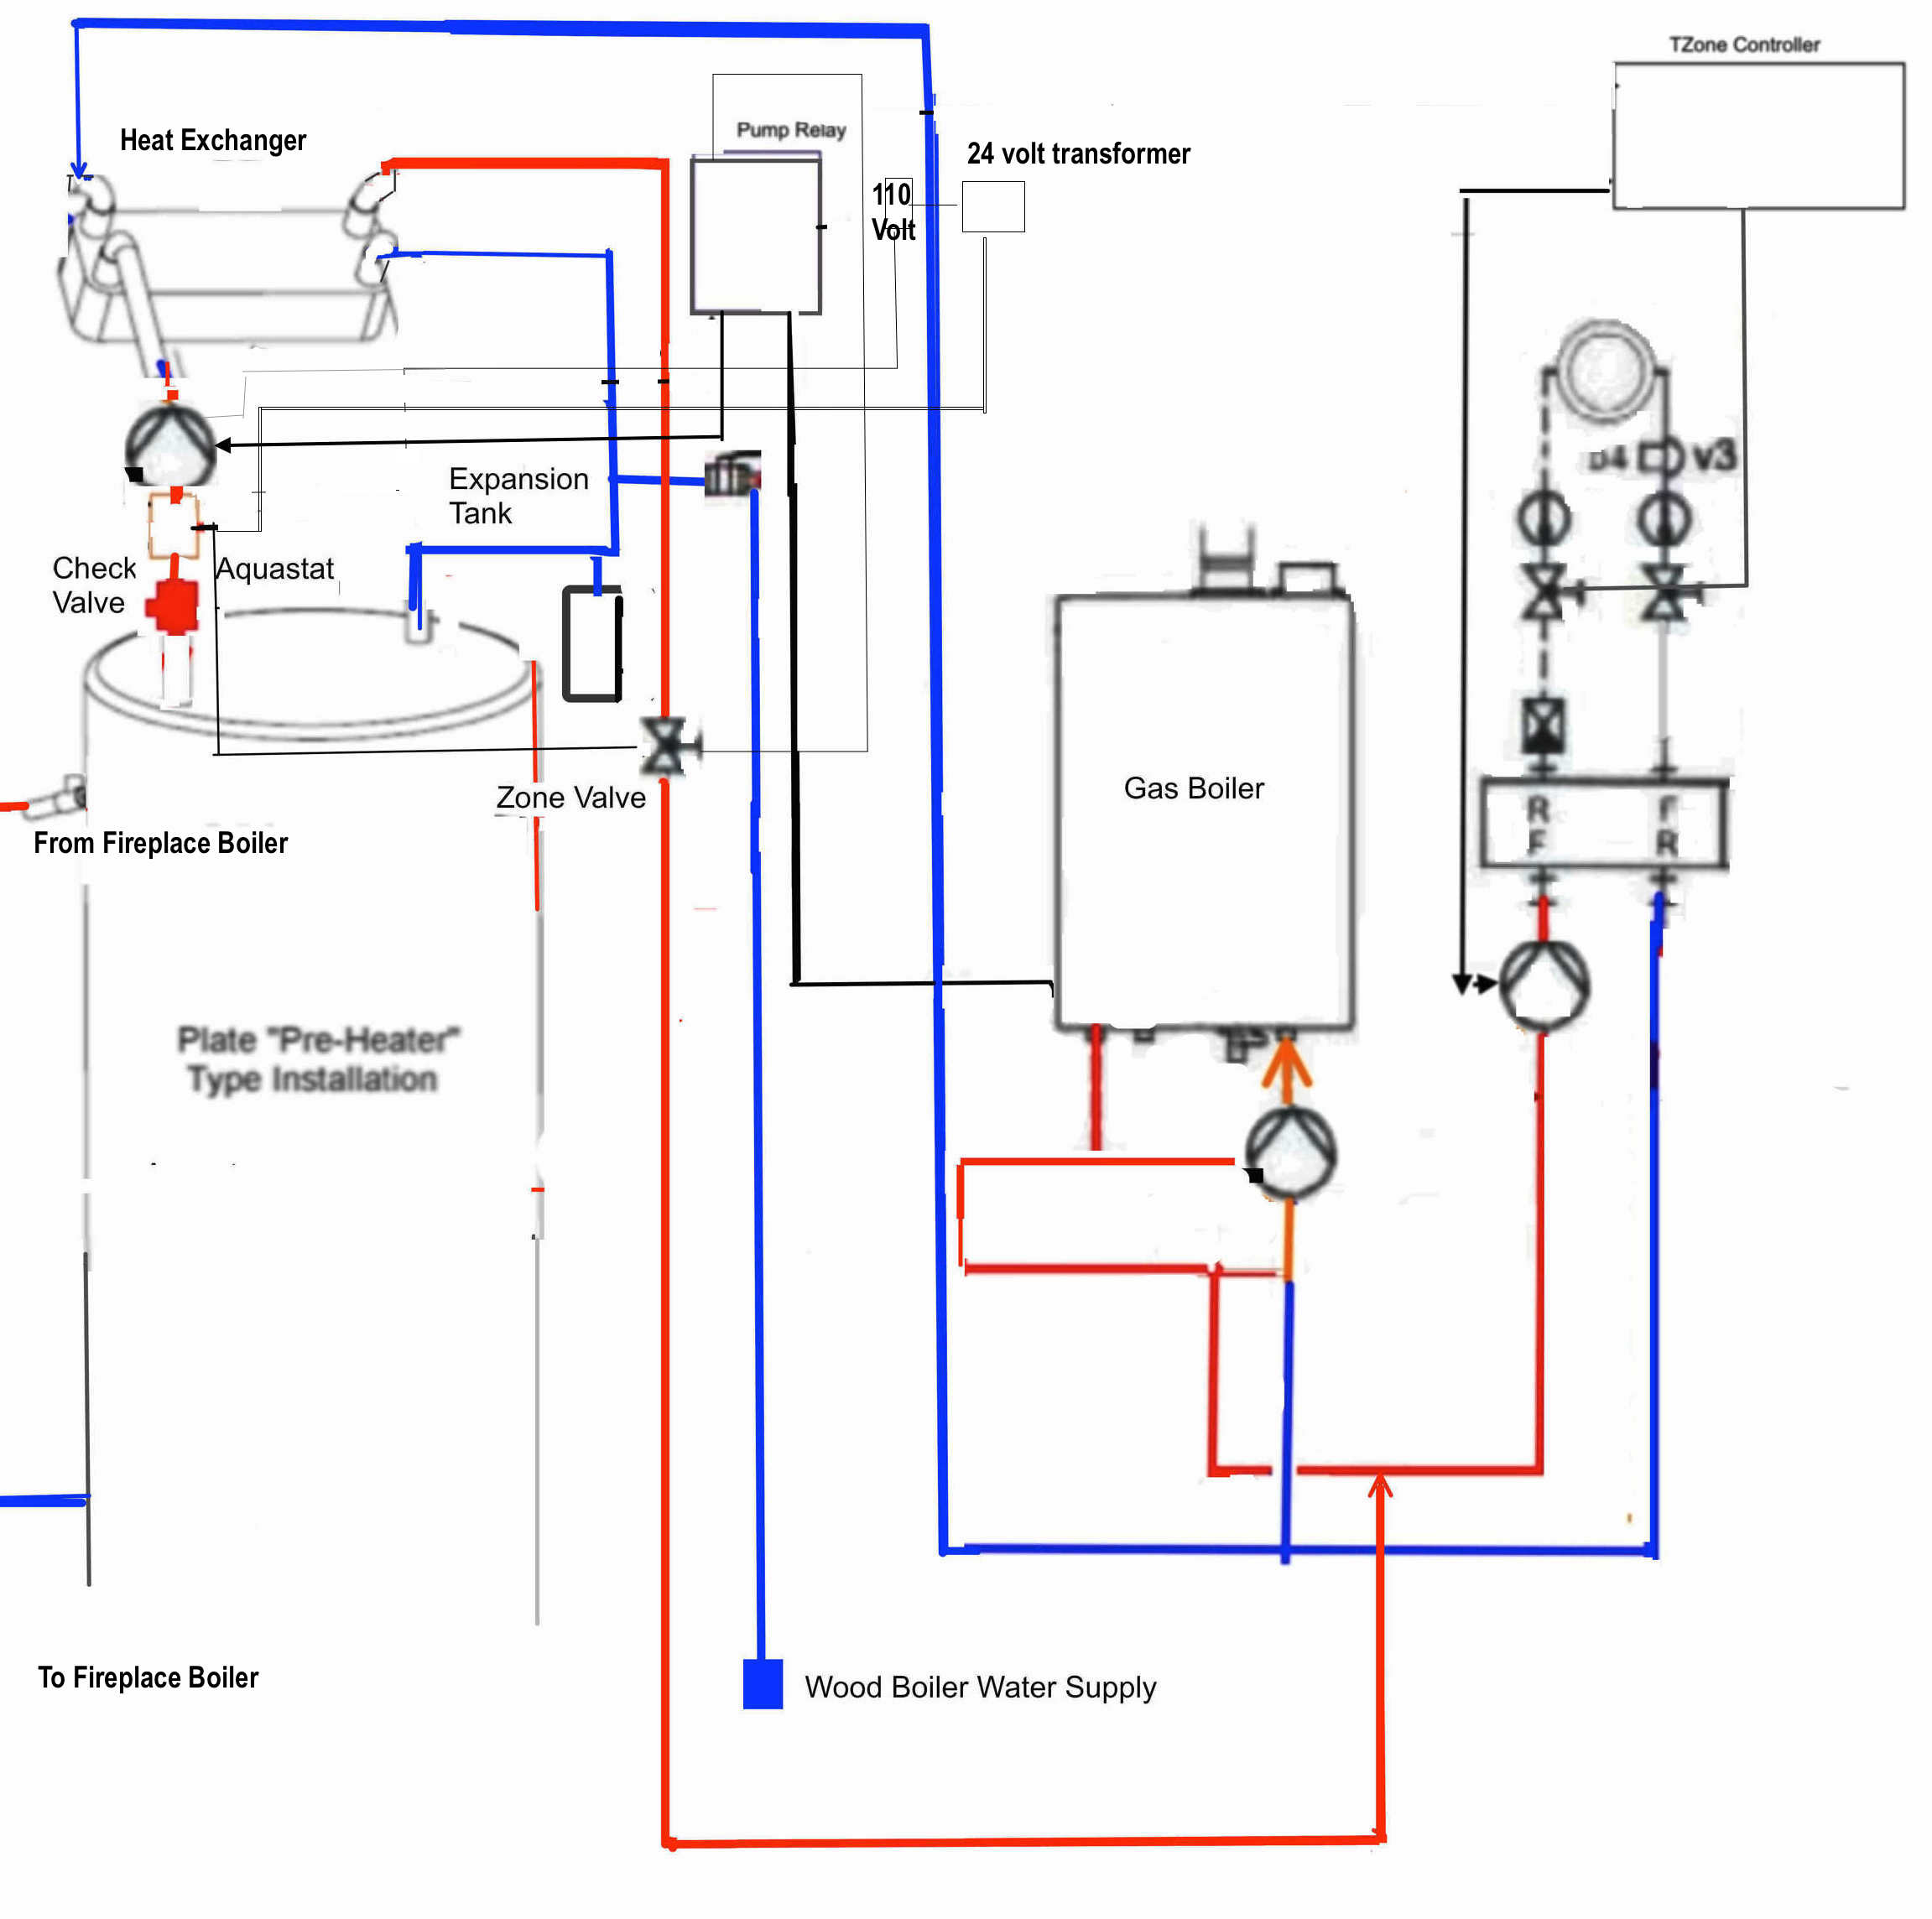 FP Boiler Storage Wiring Plan for Fireplace  Twinsprings Research Institute